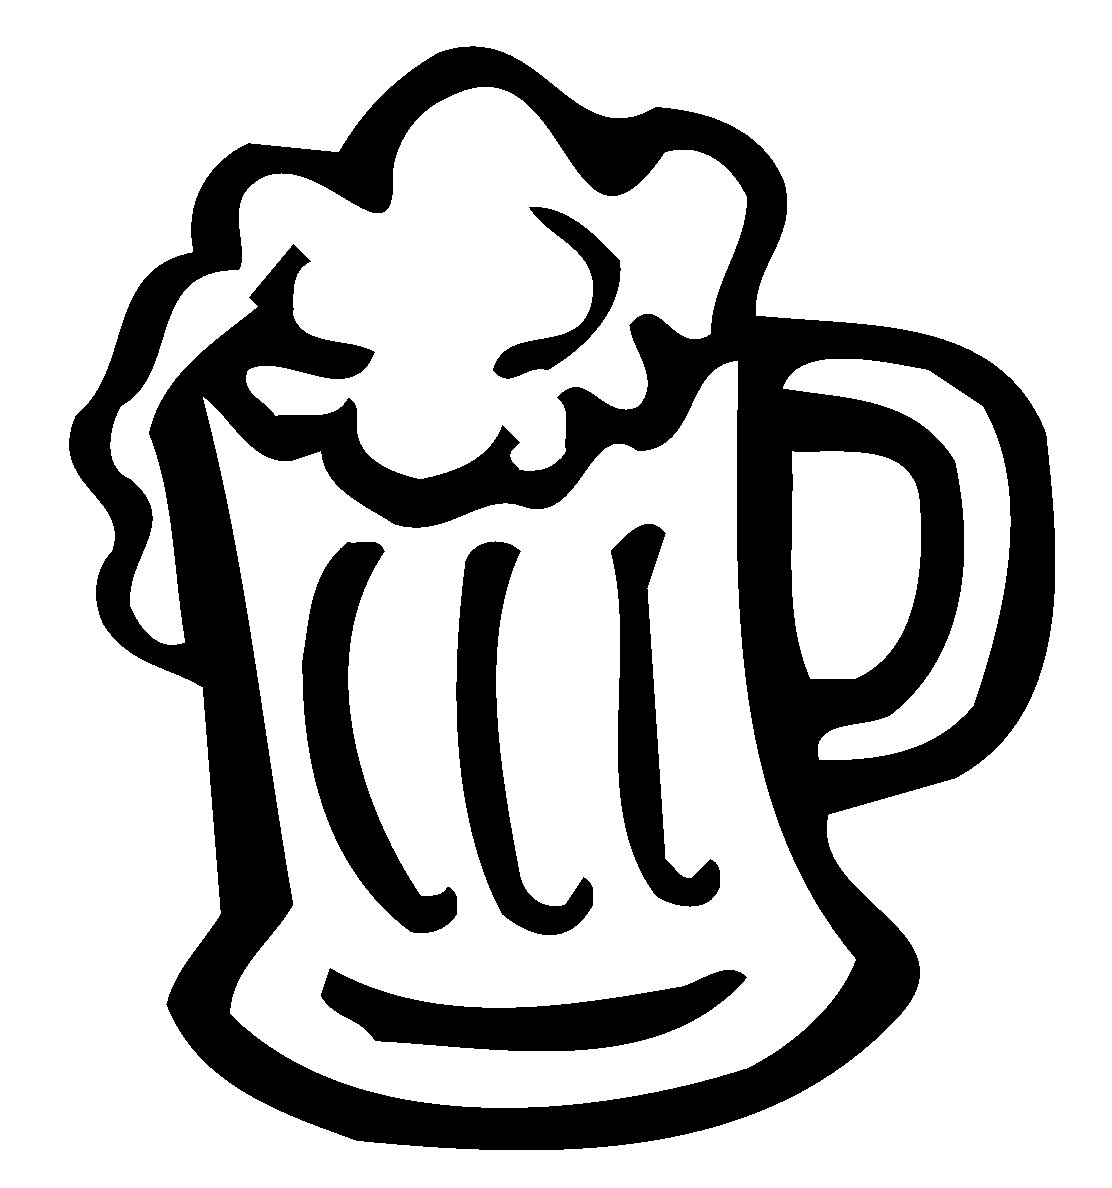 Pictures Of Beer Mugs